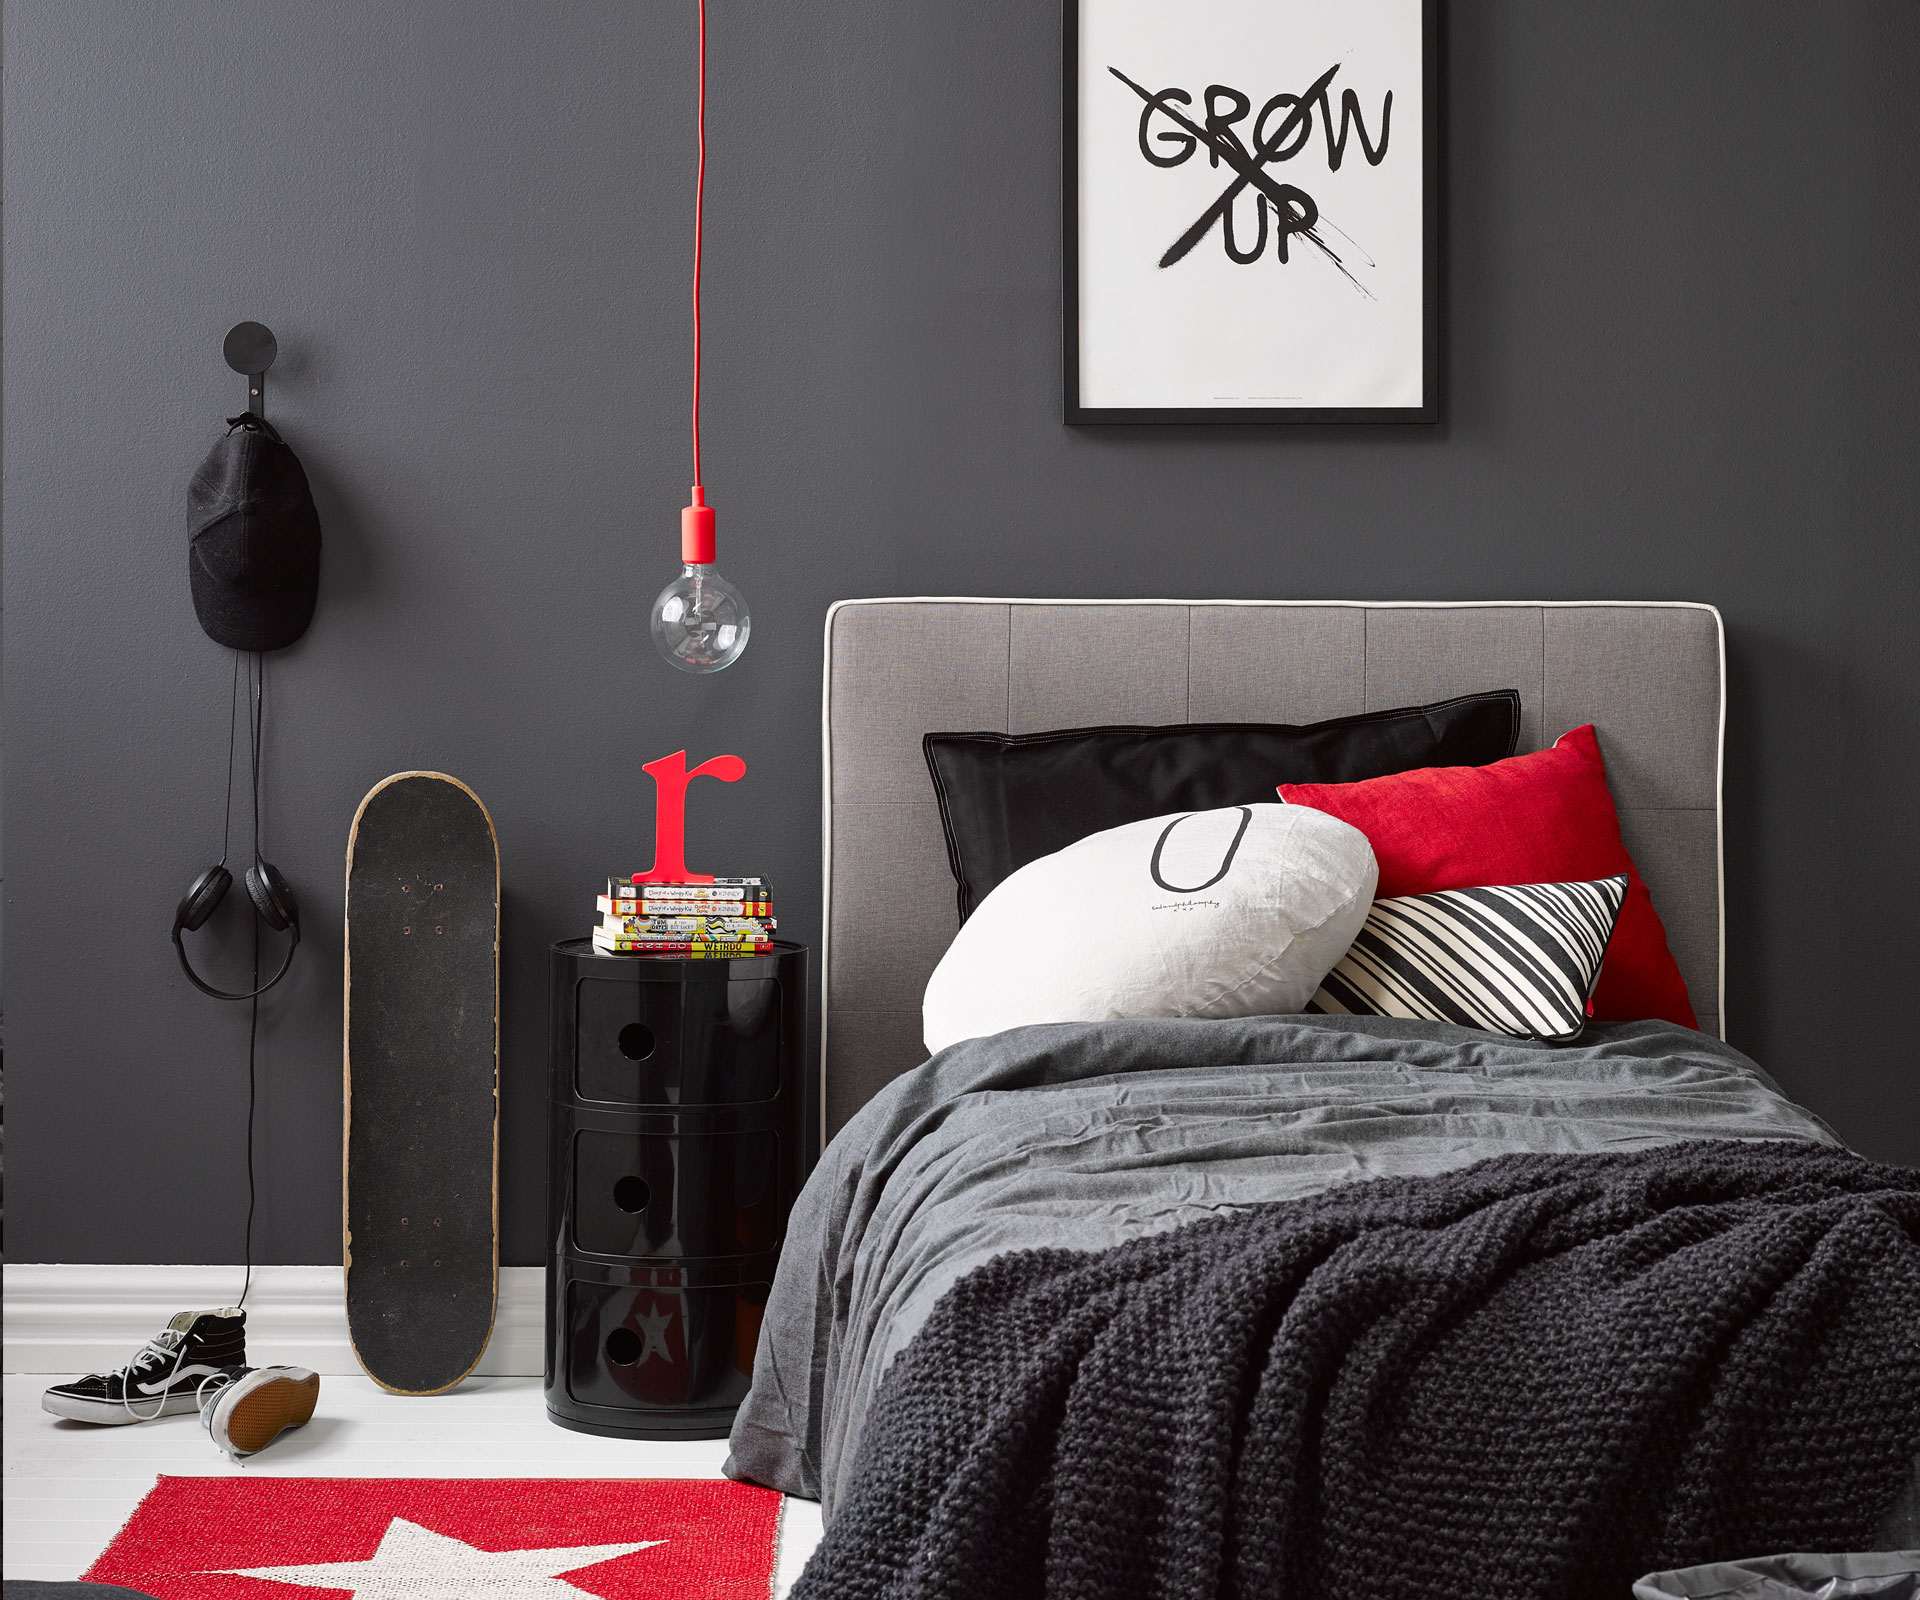 Kids bedroom ideas A dramatic monochrome room perfect